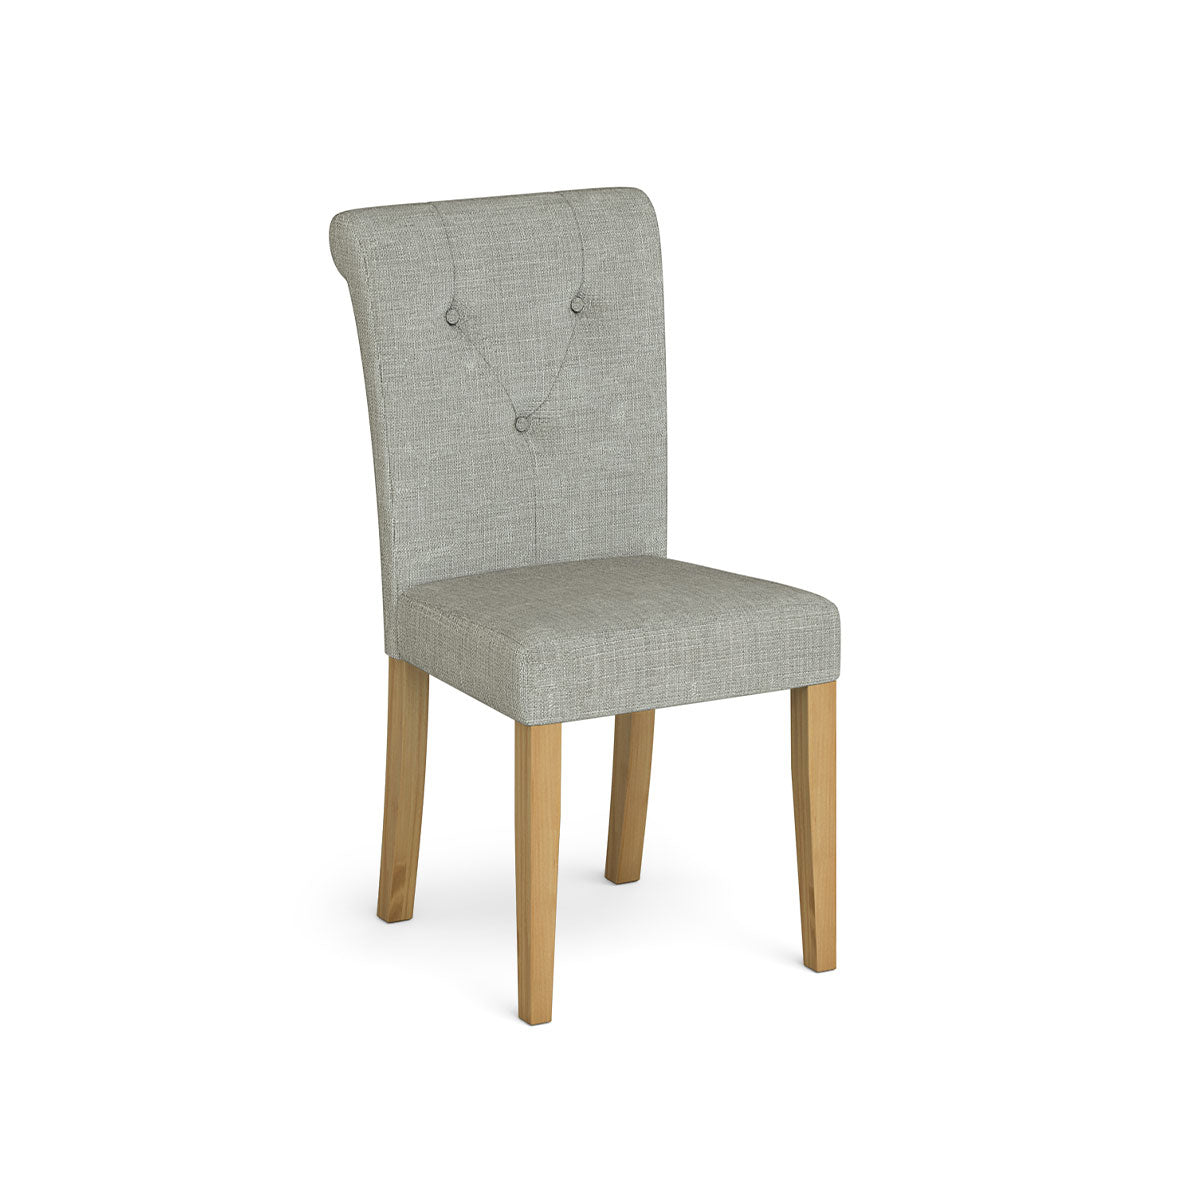 Guildford Surrey Chair